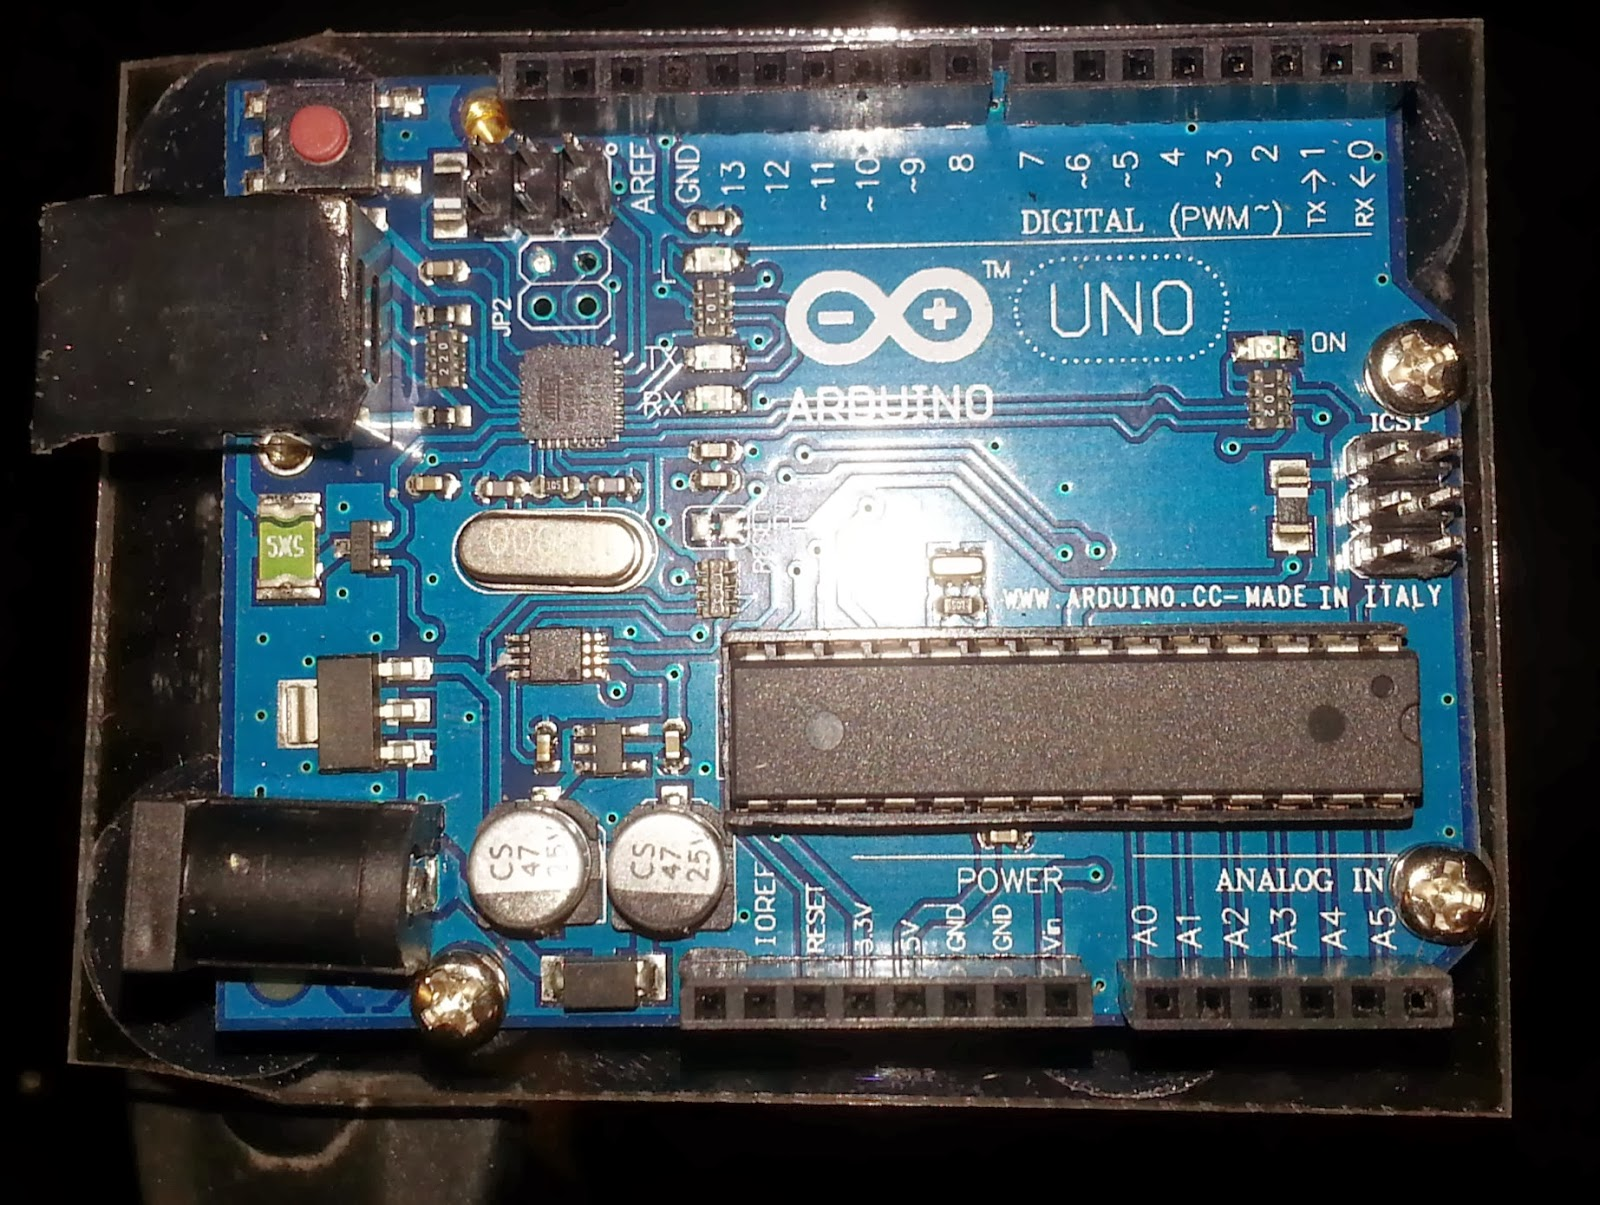 Woodys Time What Is An Arduino And Why Do You Need One Simple Relay Shield For Use Projects If Havent Heard Of Then Your In A Treat All Those Little That Have Thought Up Complex Brain Yours But